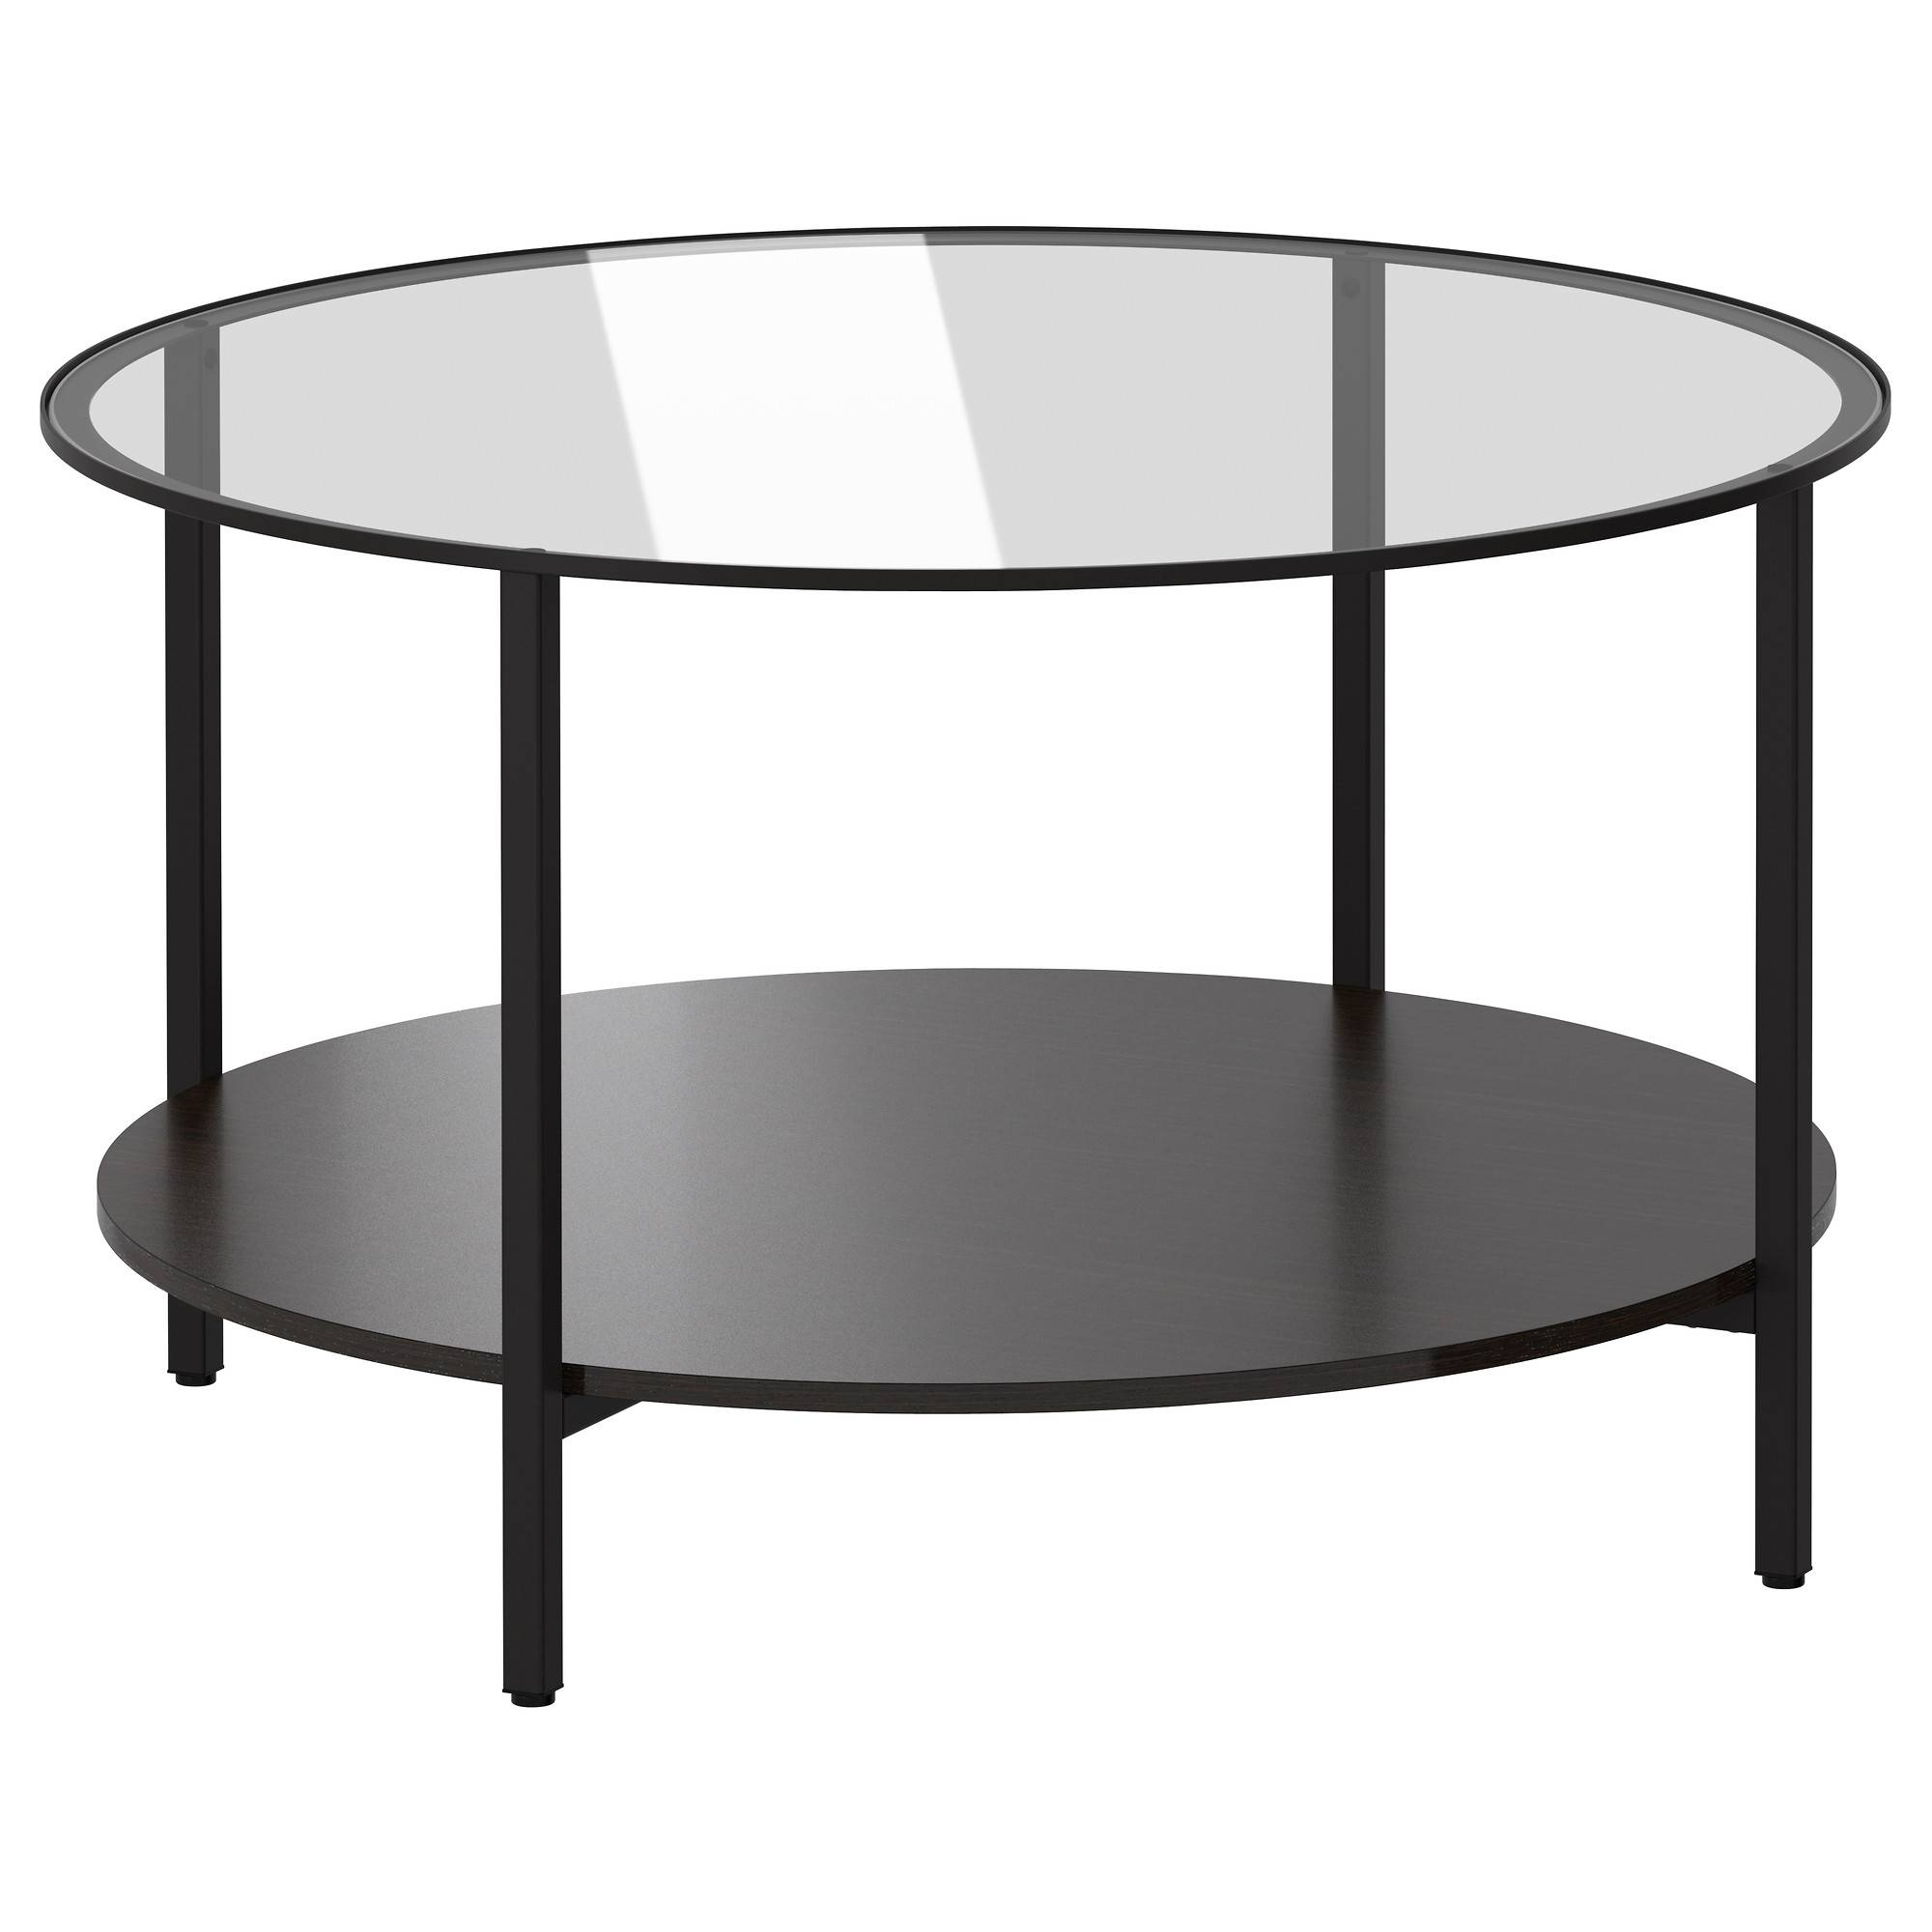 Vittsjö Coffee Table - White/glass - Ikea pertaining to Circular Glass Coffee Tables (Image 30 of 30)